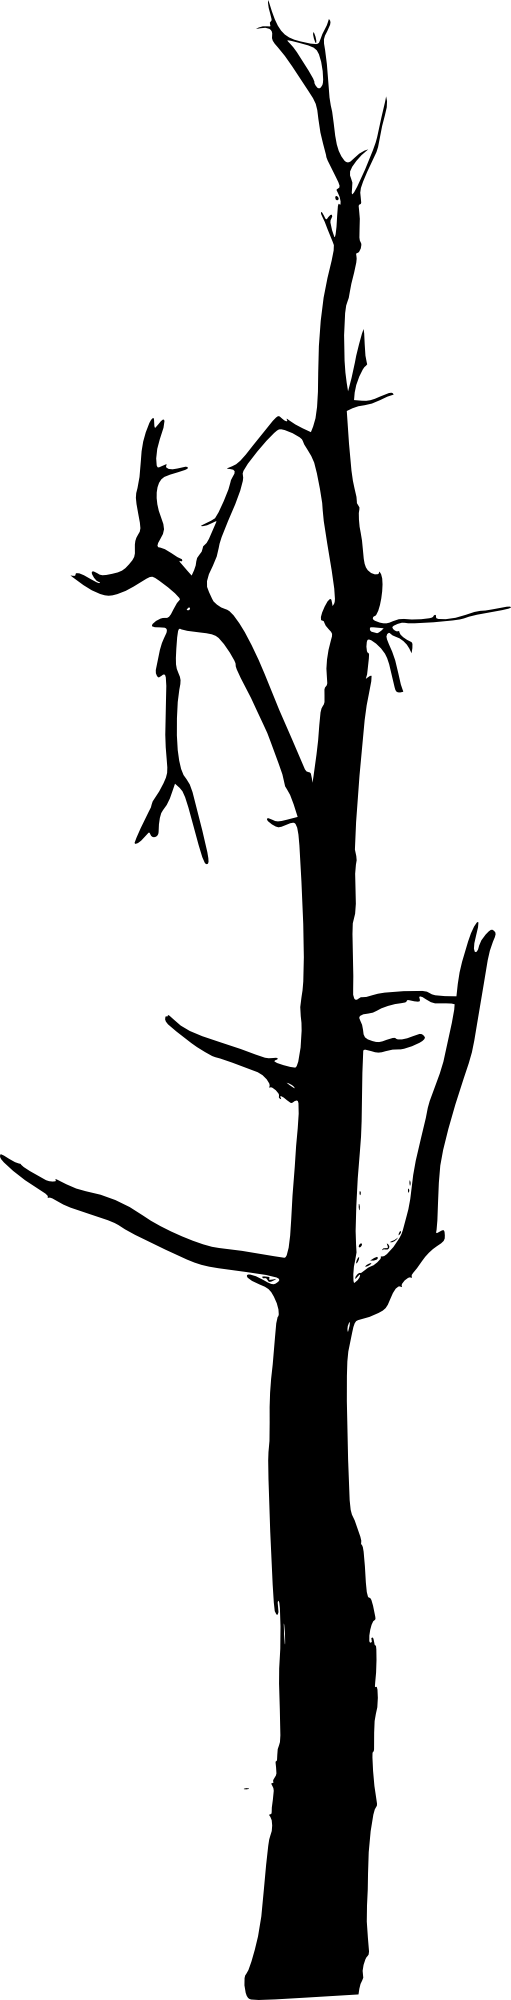 Bare tree black and white clipart clip art black and white stock Bare Tree Drawing at GetDrawings.com | Free for personal use Bare ... clip art black and white stock